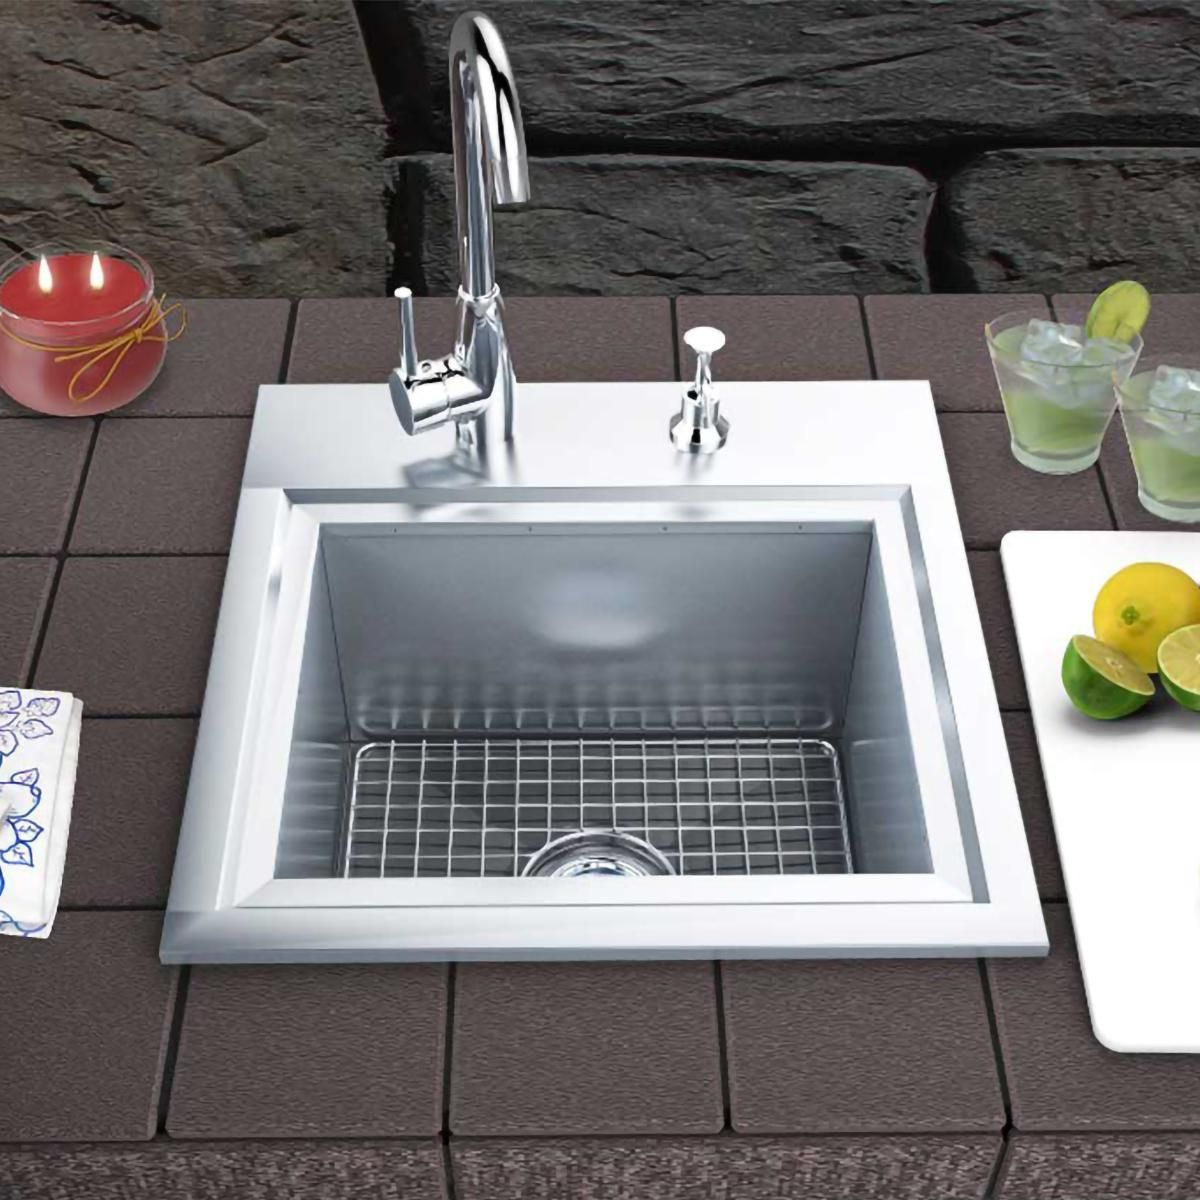 Sunstone Premium 21 X 20 Outdoor Rated Stainless Steel Drop In Sink With Hot Cold Faucet B Ps21 Bbqguys Sink Drop In Sink Outdoor Kitchen